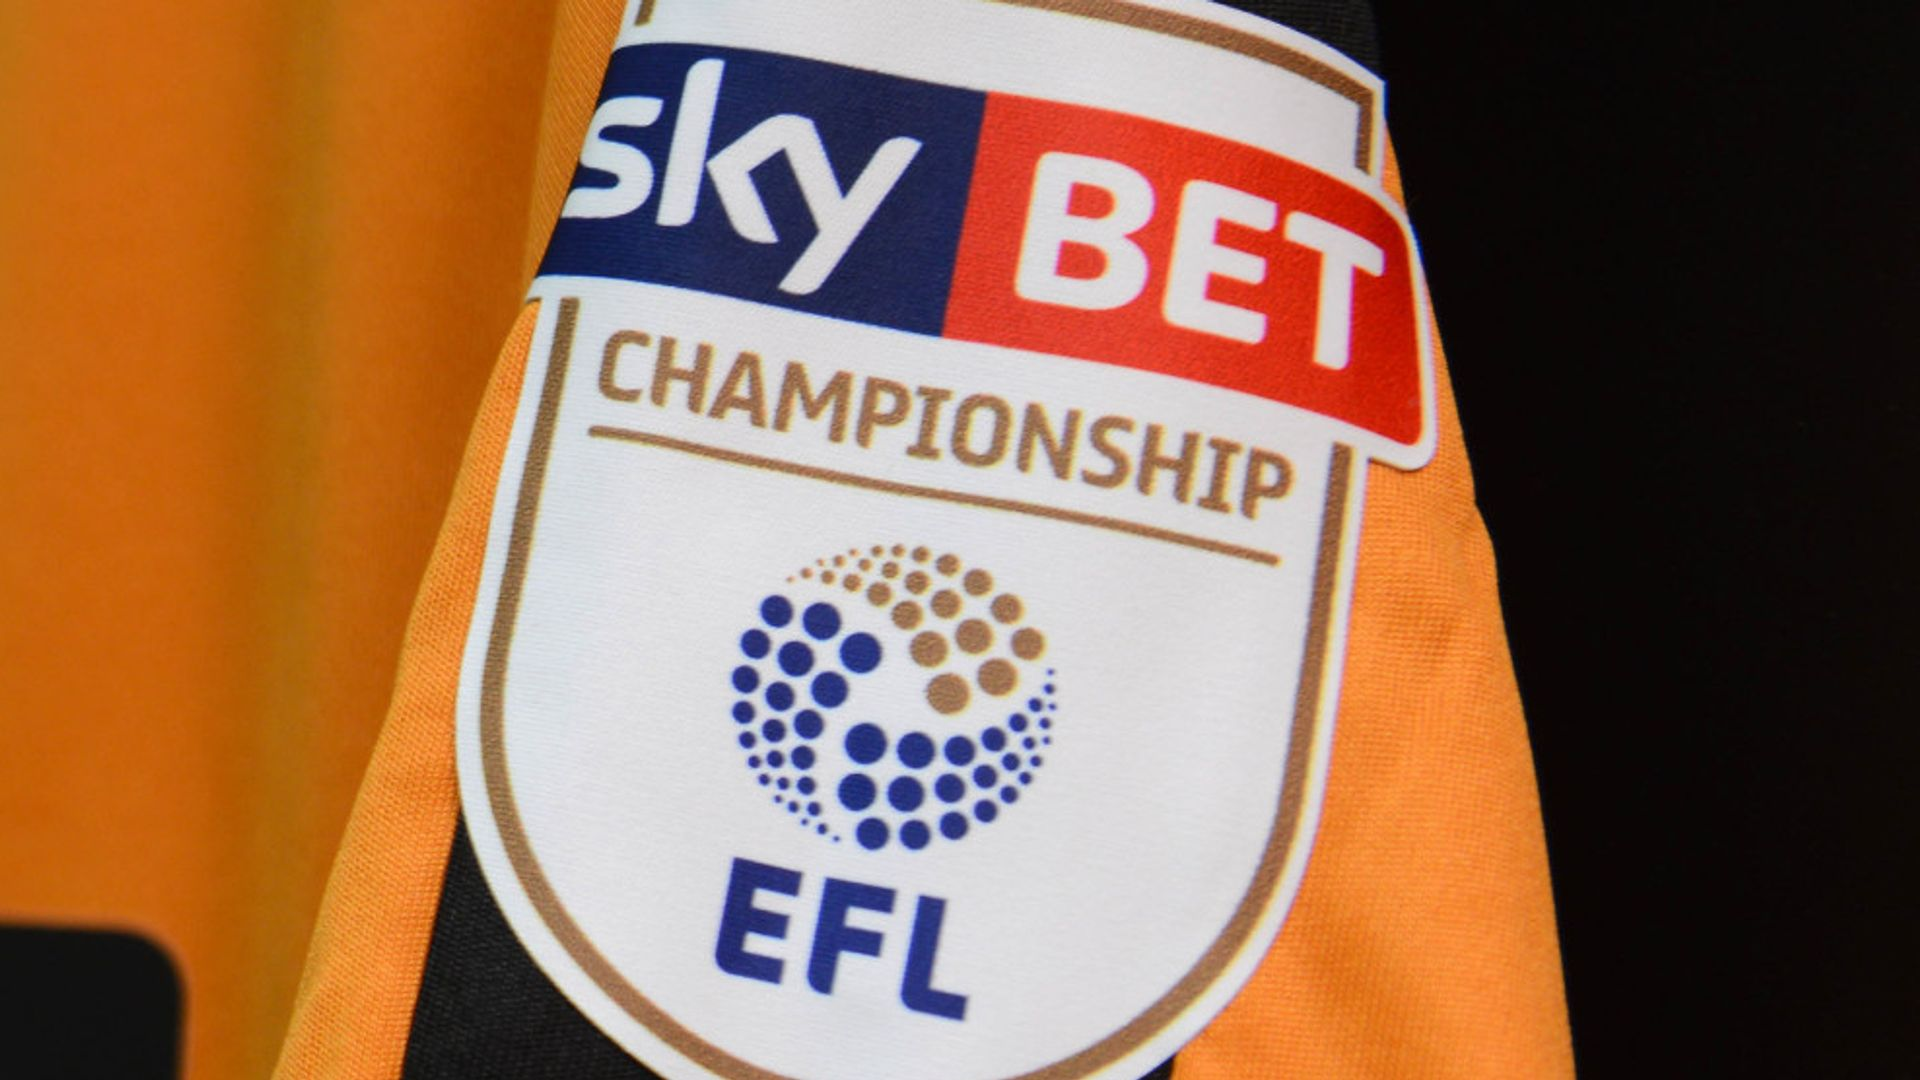 Sky Bet Championship play-off dates confirmed